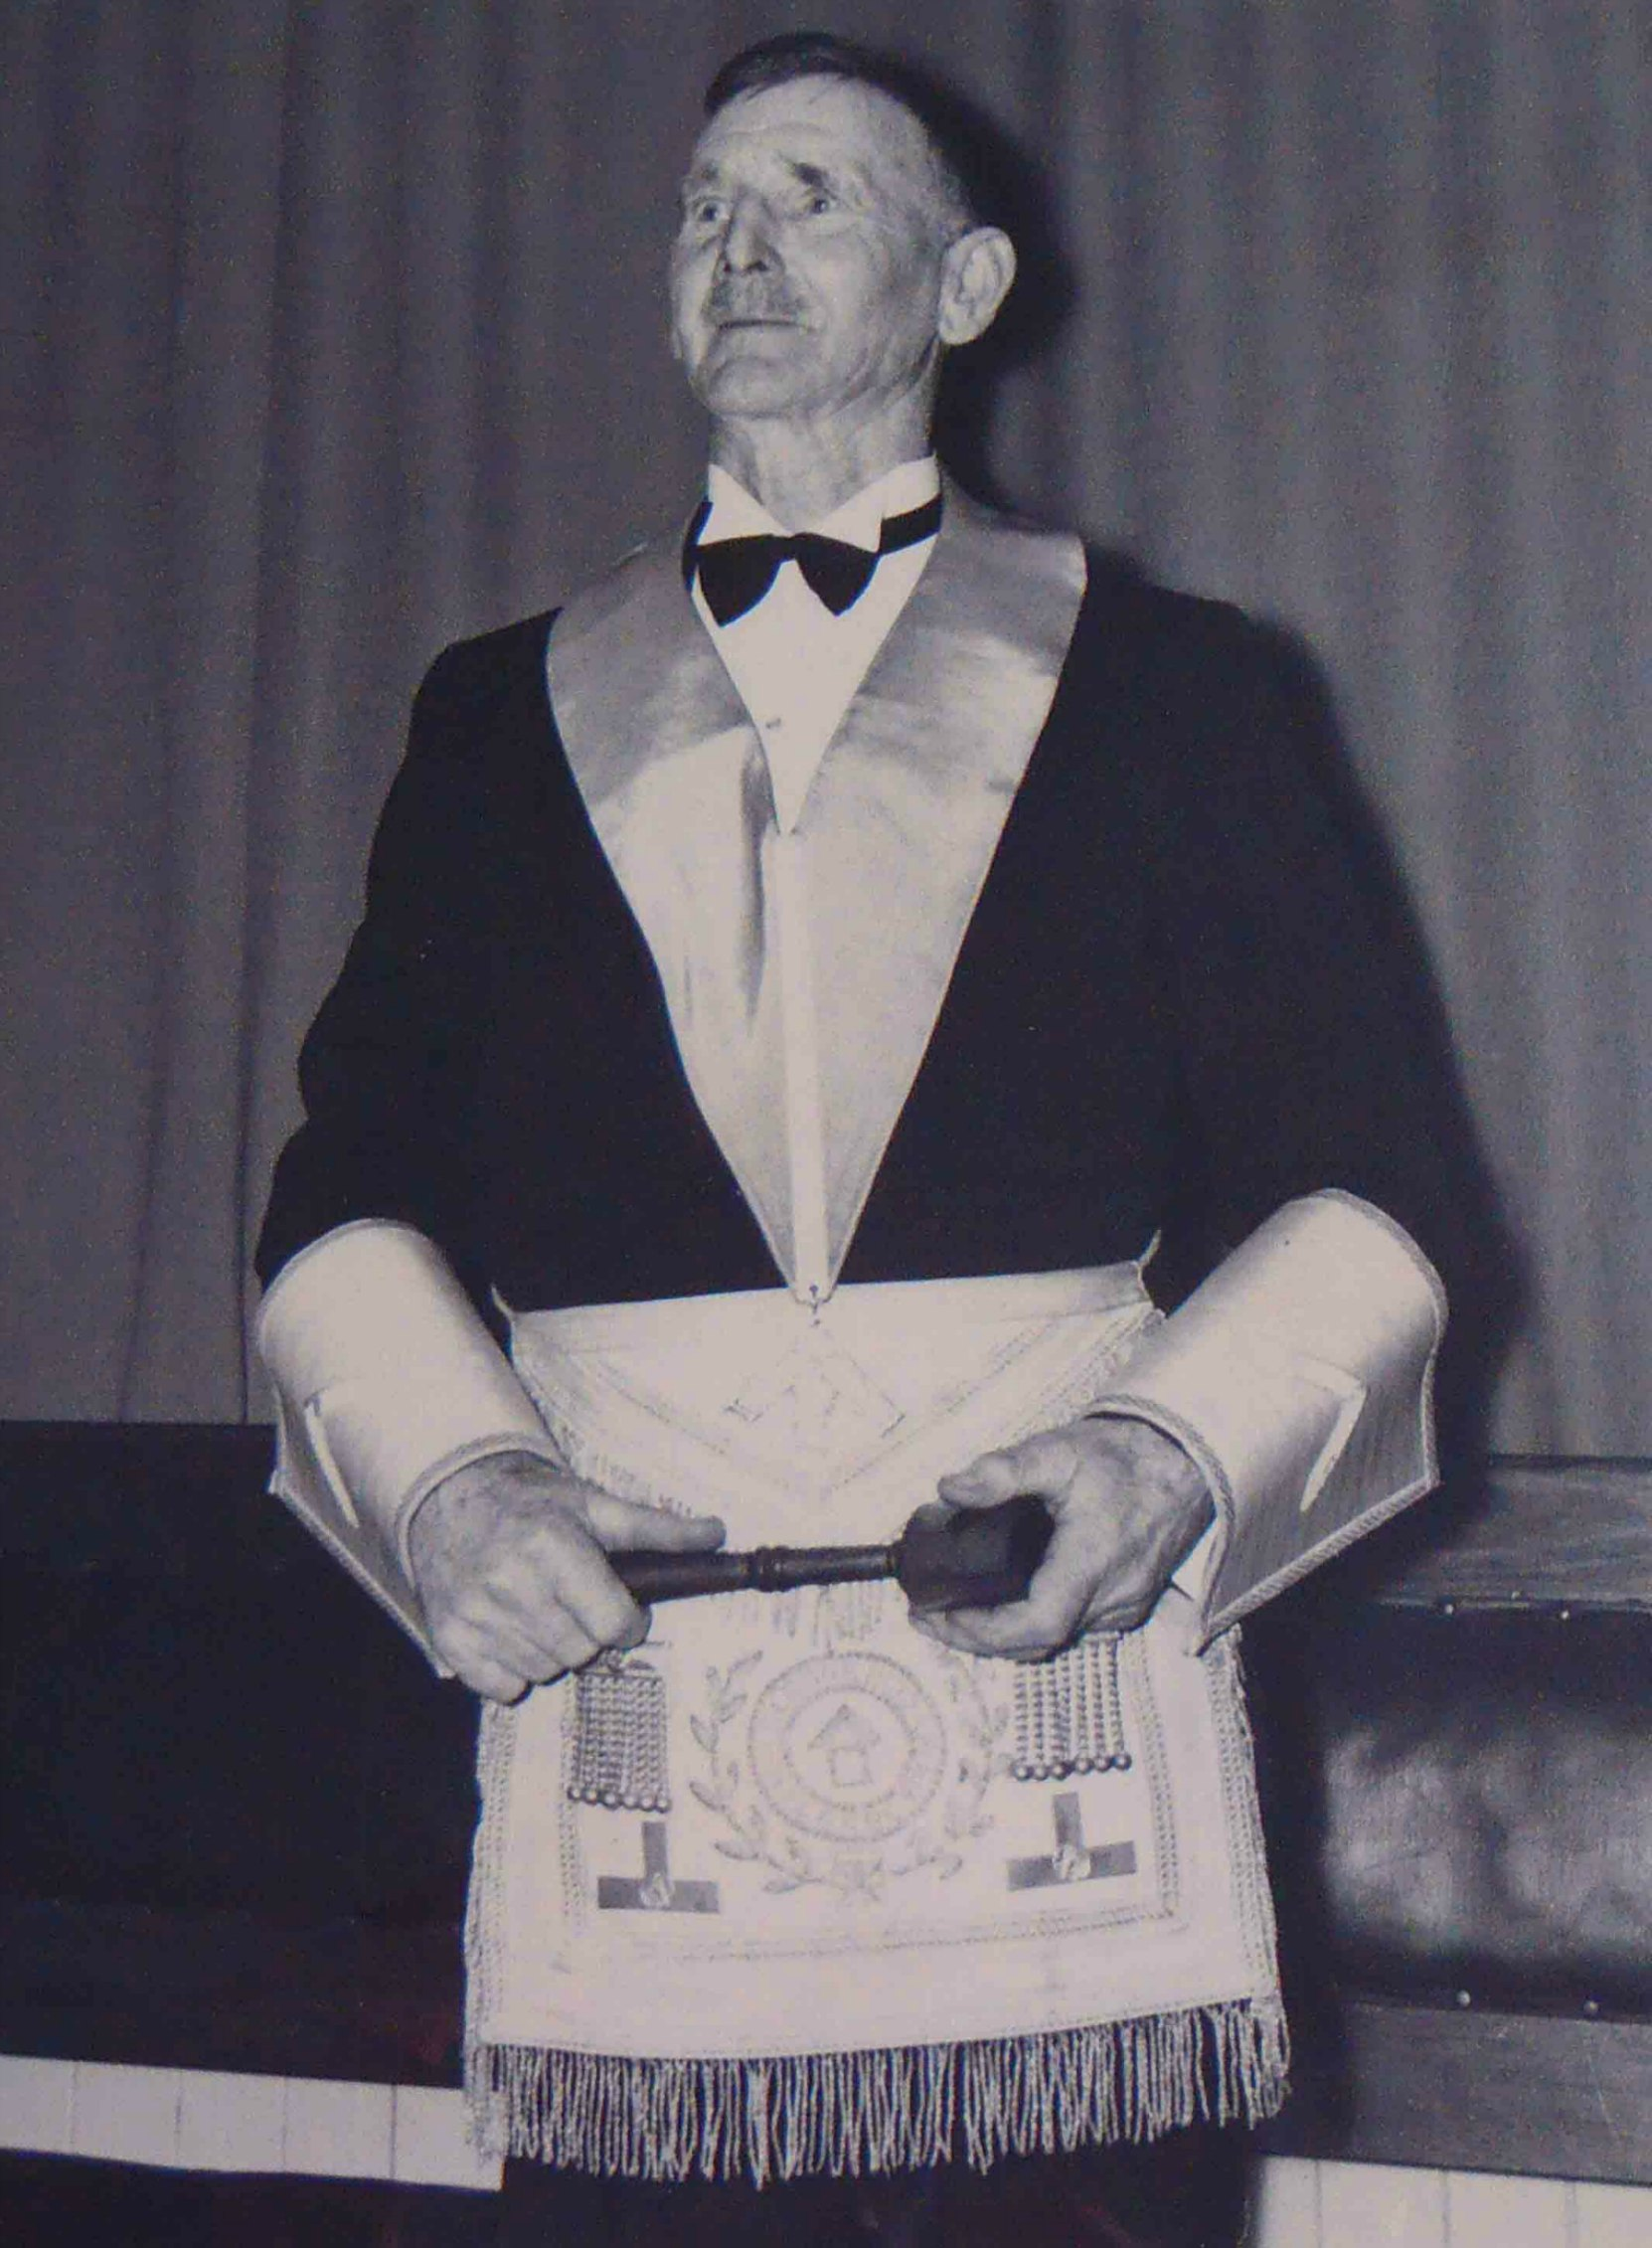 Eide Henry Peterson in Masonic regalia, circa 1958.